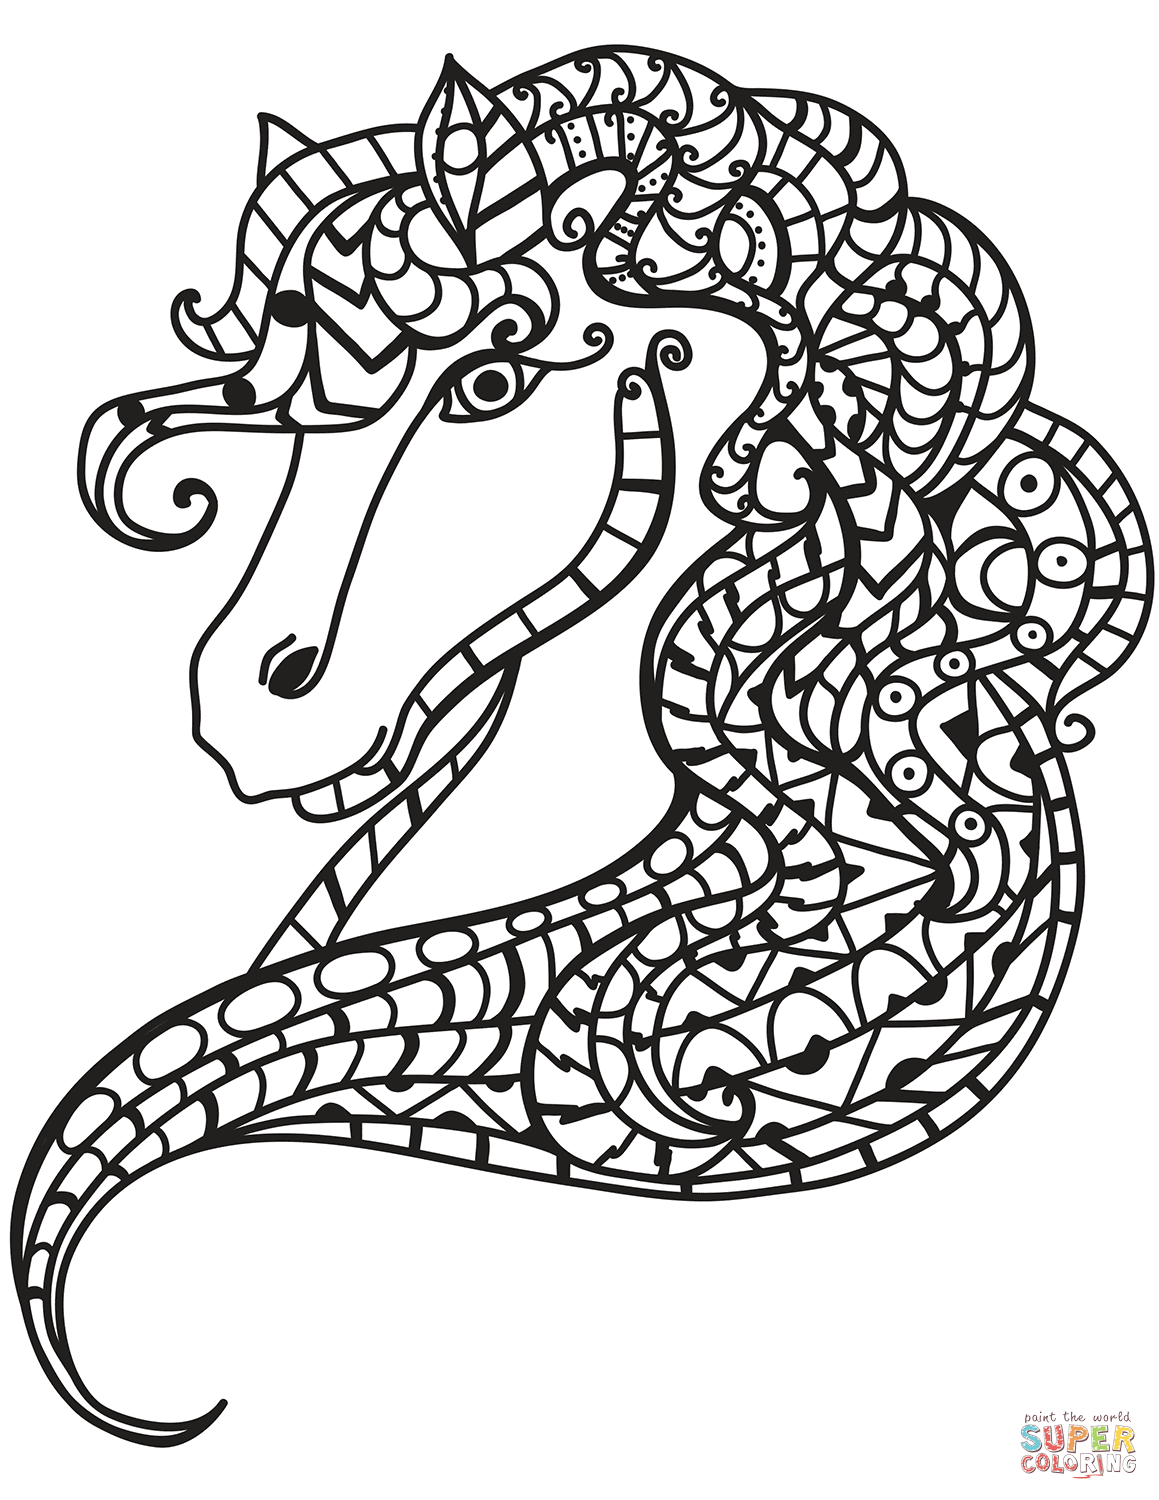 Horse Head Zentangle Coloring Page Free Printable Coloring Pages Coloring Pages Horse Coloring Pages Free Printable Coloring Pages